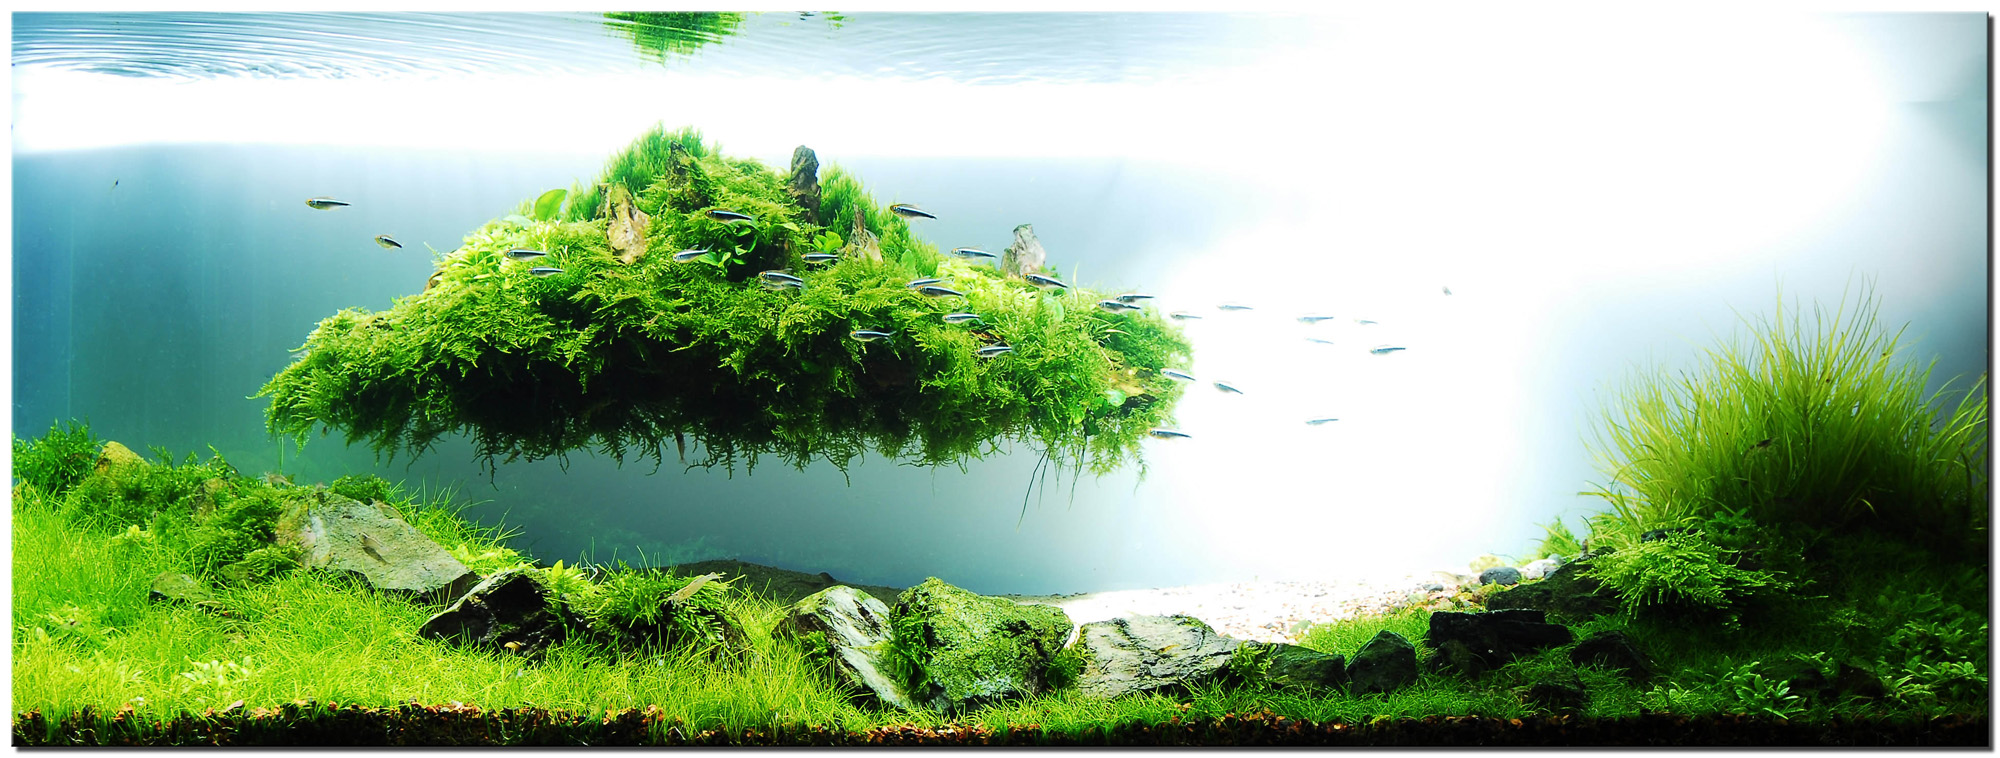 The Art of Aquascaping | Joe Blogs